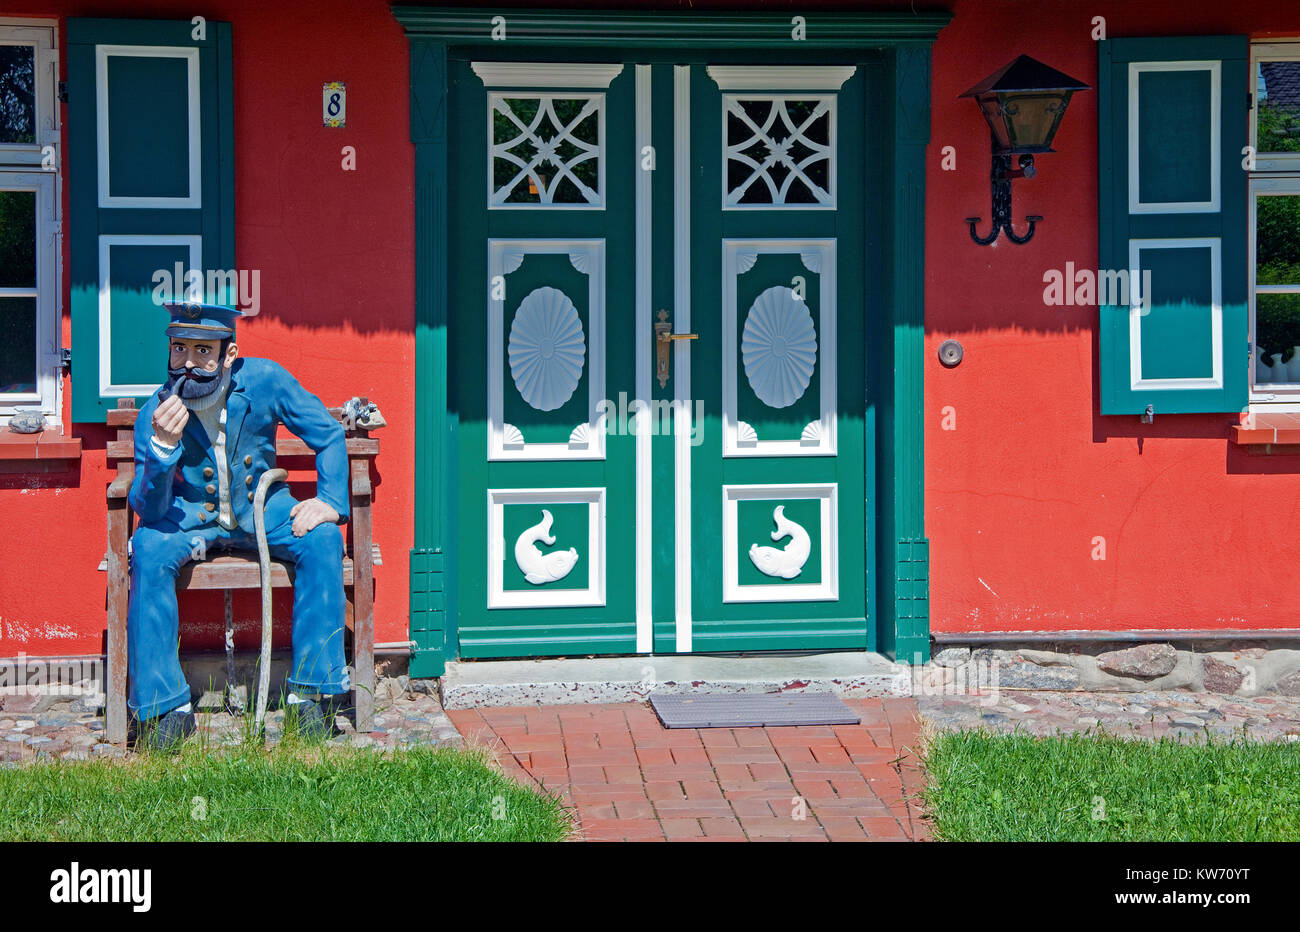 Captain figure in front of a colourful house, village Althagen, Ahrenshoop, Fischland, Mecklenburg-Western Pomerania, - Stock Image